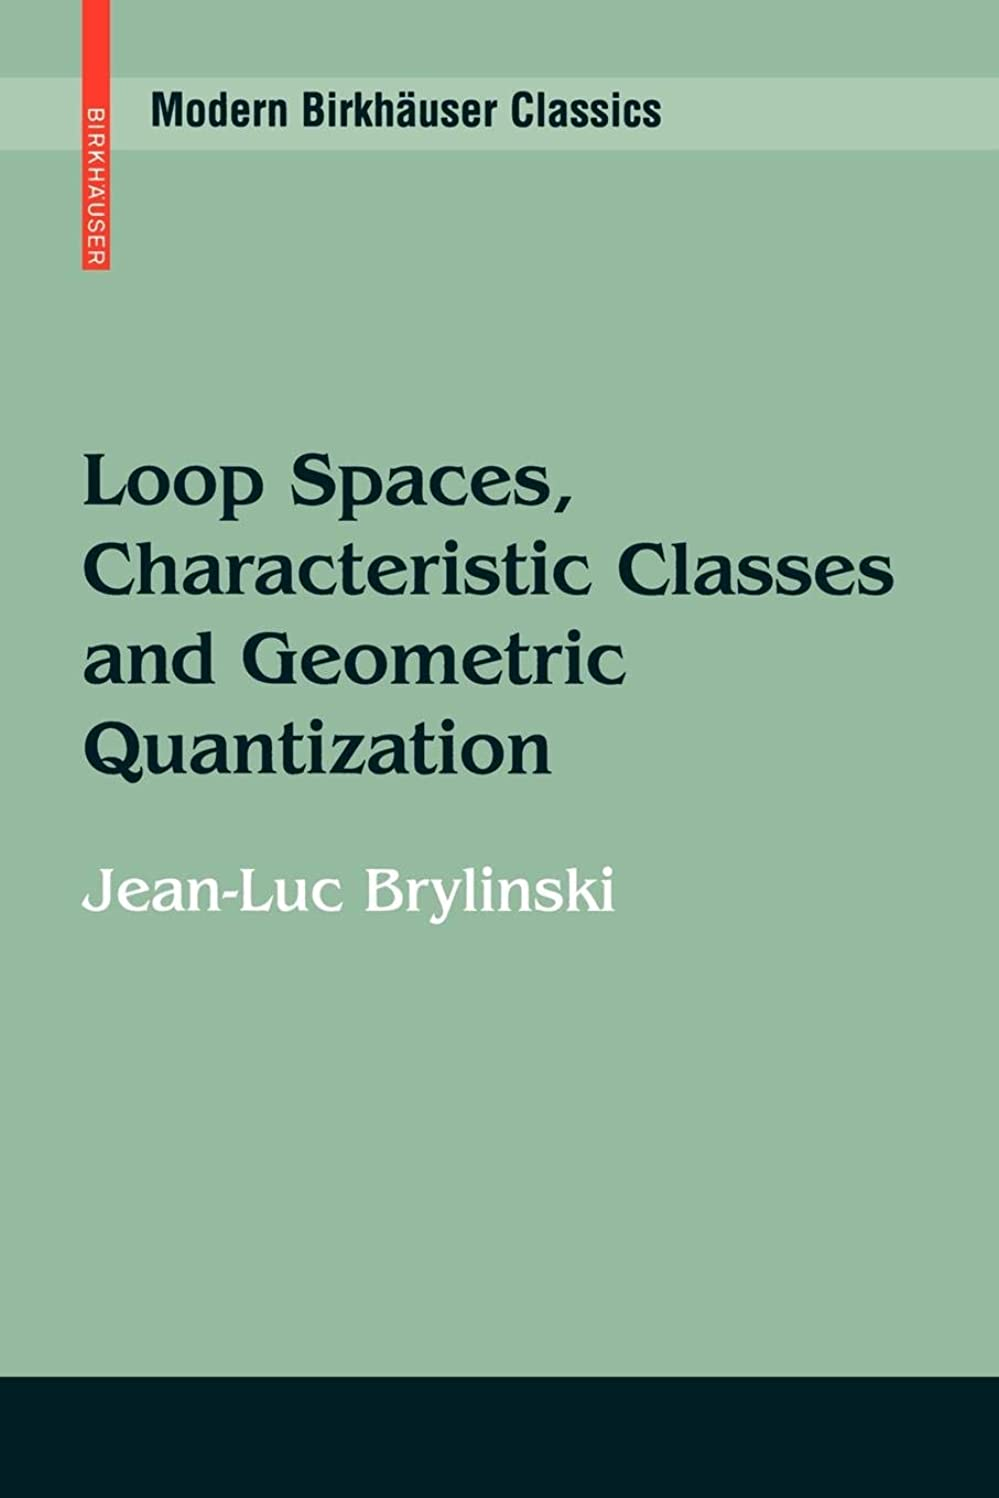 失礼な機械的輸送Loop Spaces, Characteristic Classes and Geometric Quantization (Modern Birkhaeuser Classics)